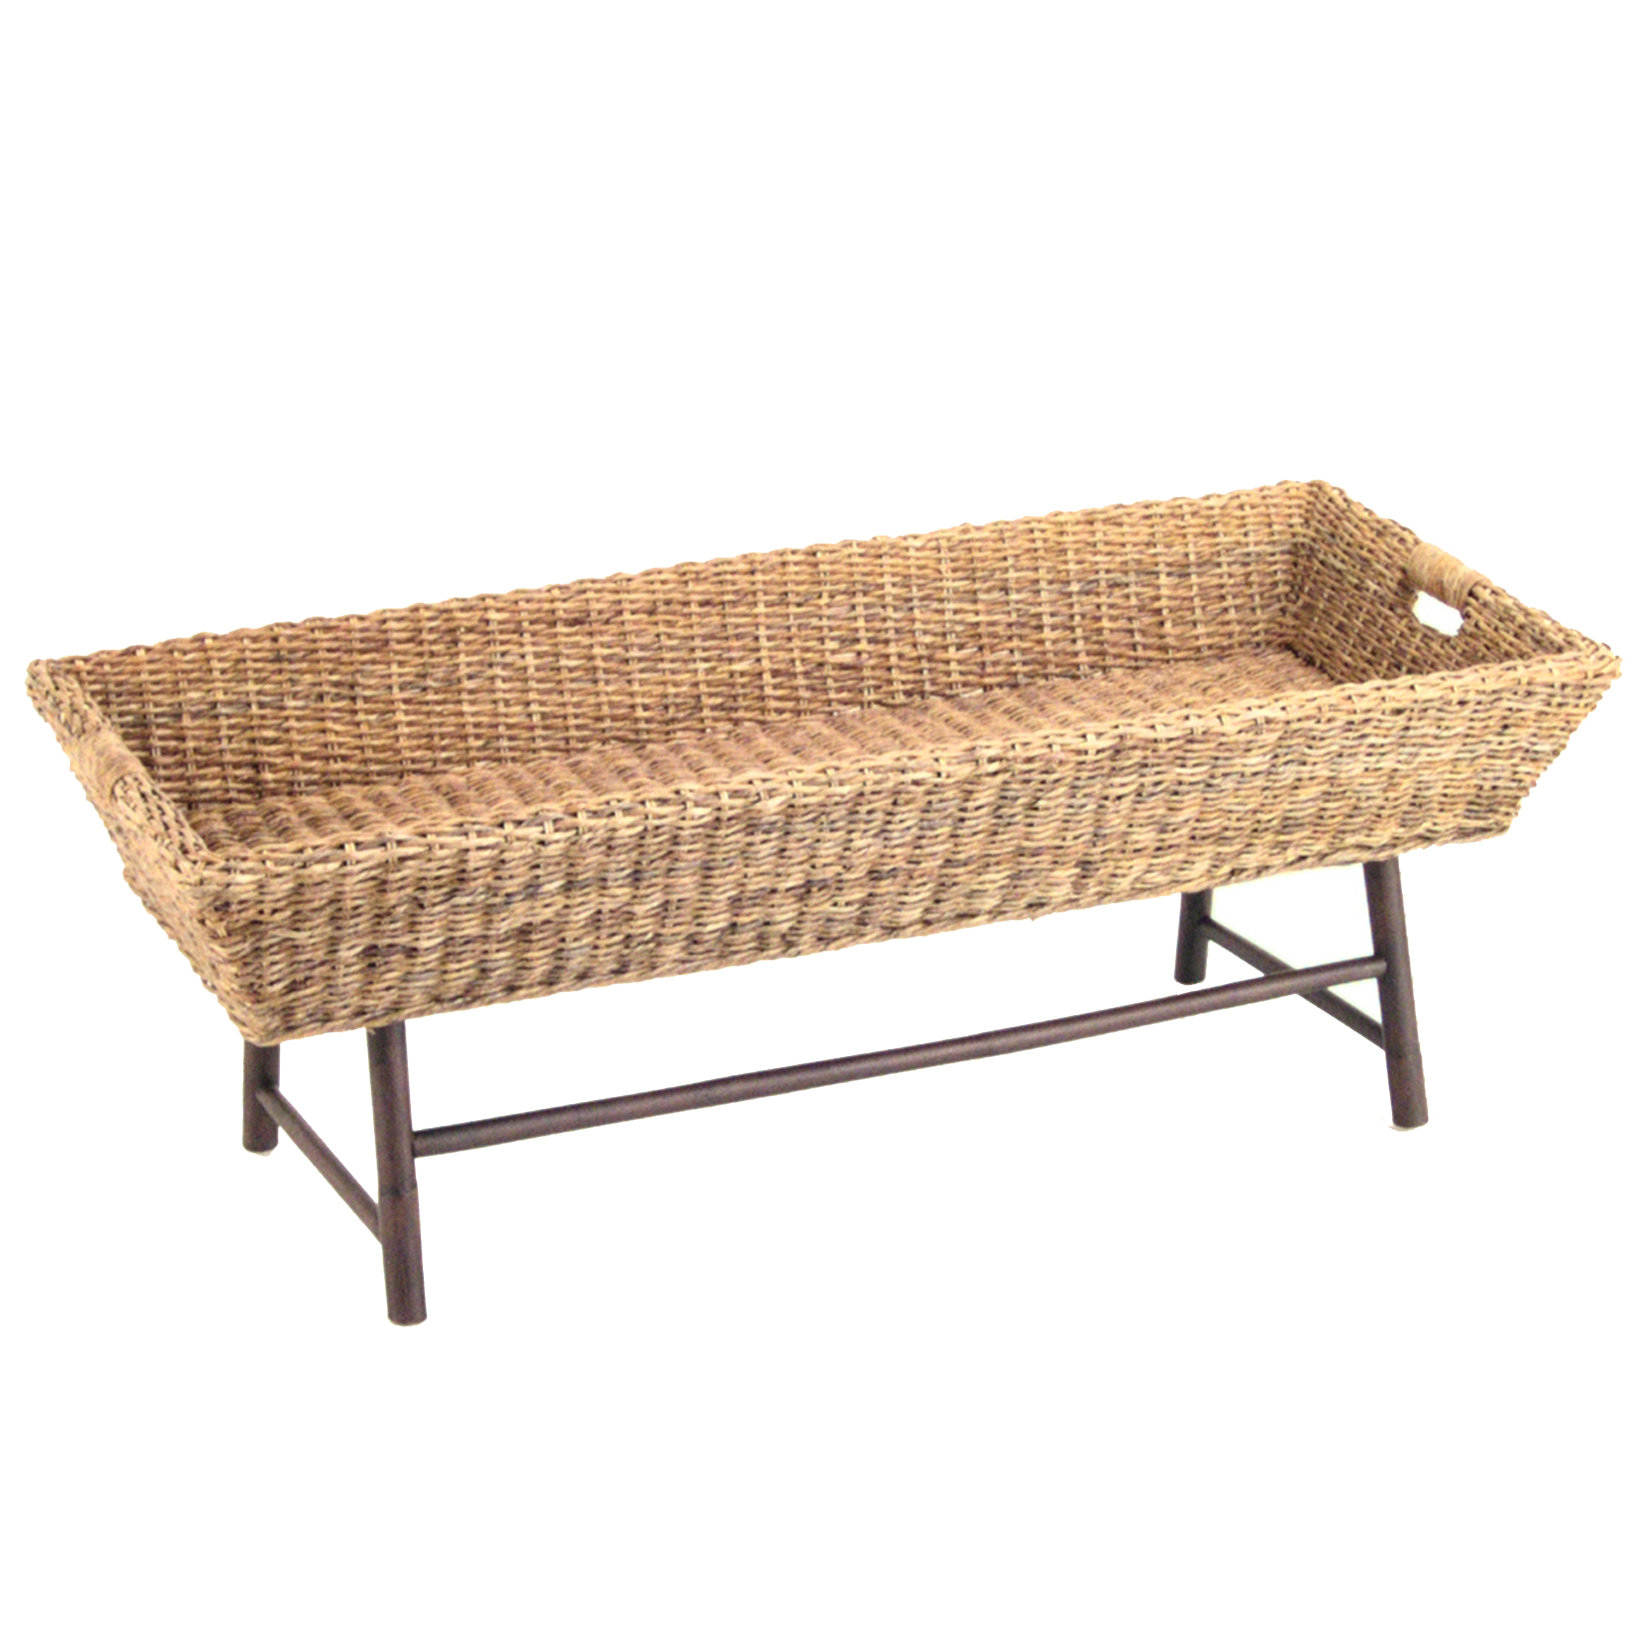 Basket Coffee Table Pertaining To Most Up To Date Rustic Coffee Tables With Wicker Storage Baskets (View 18 of 20)